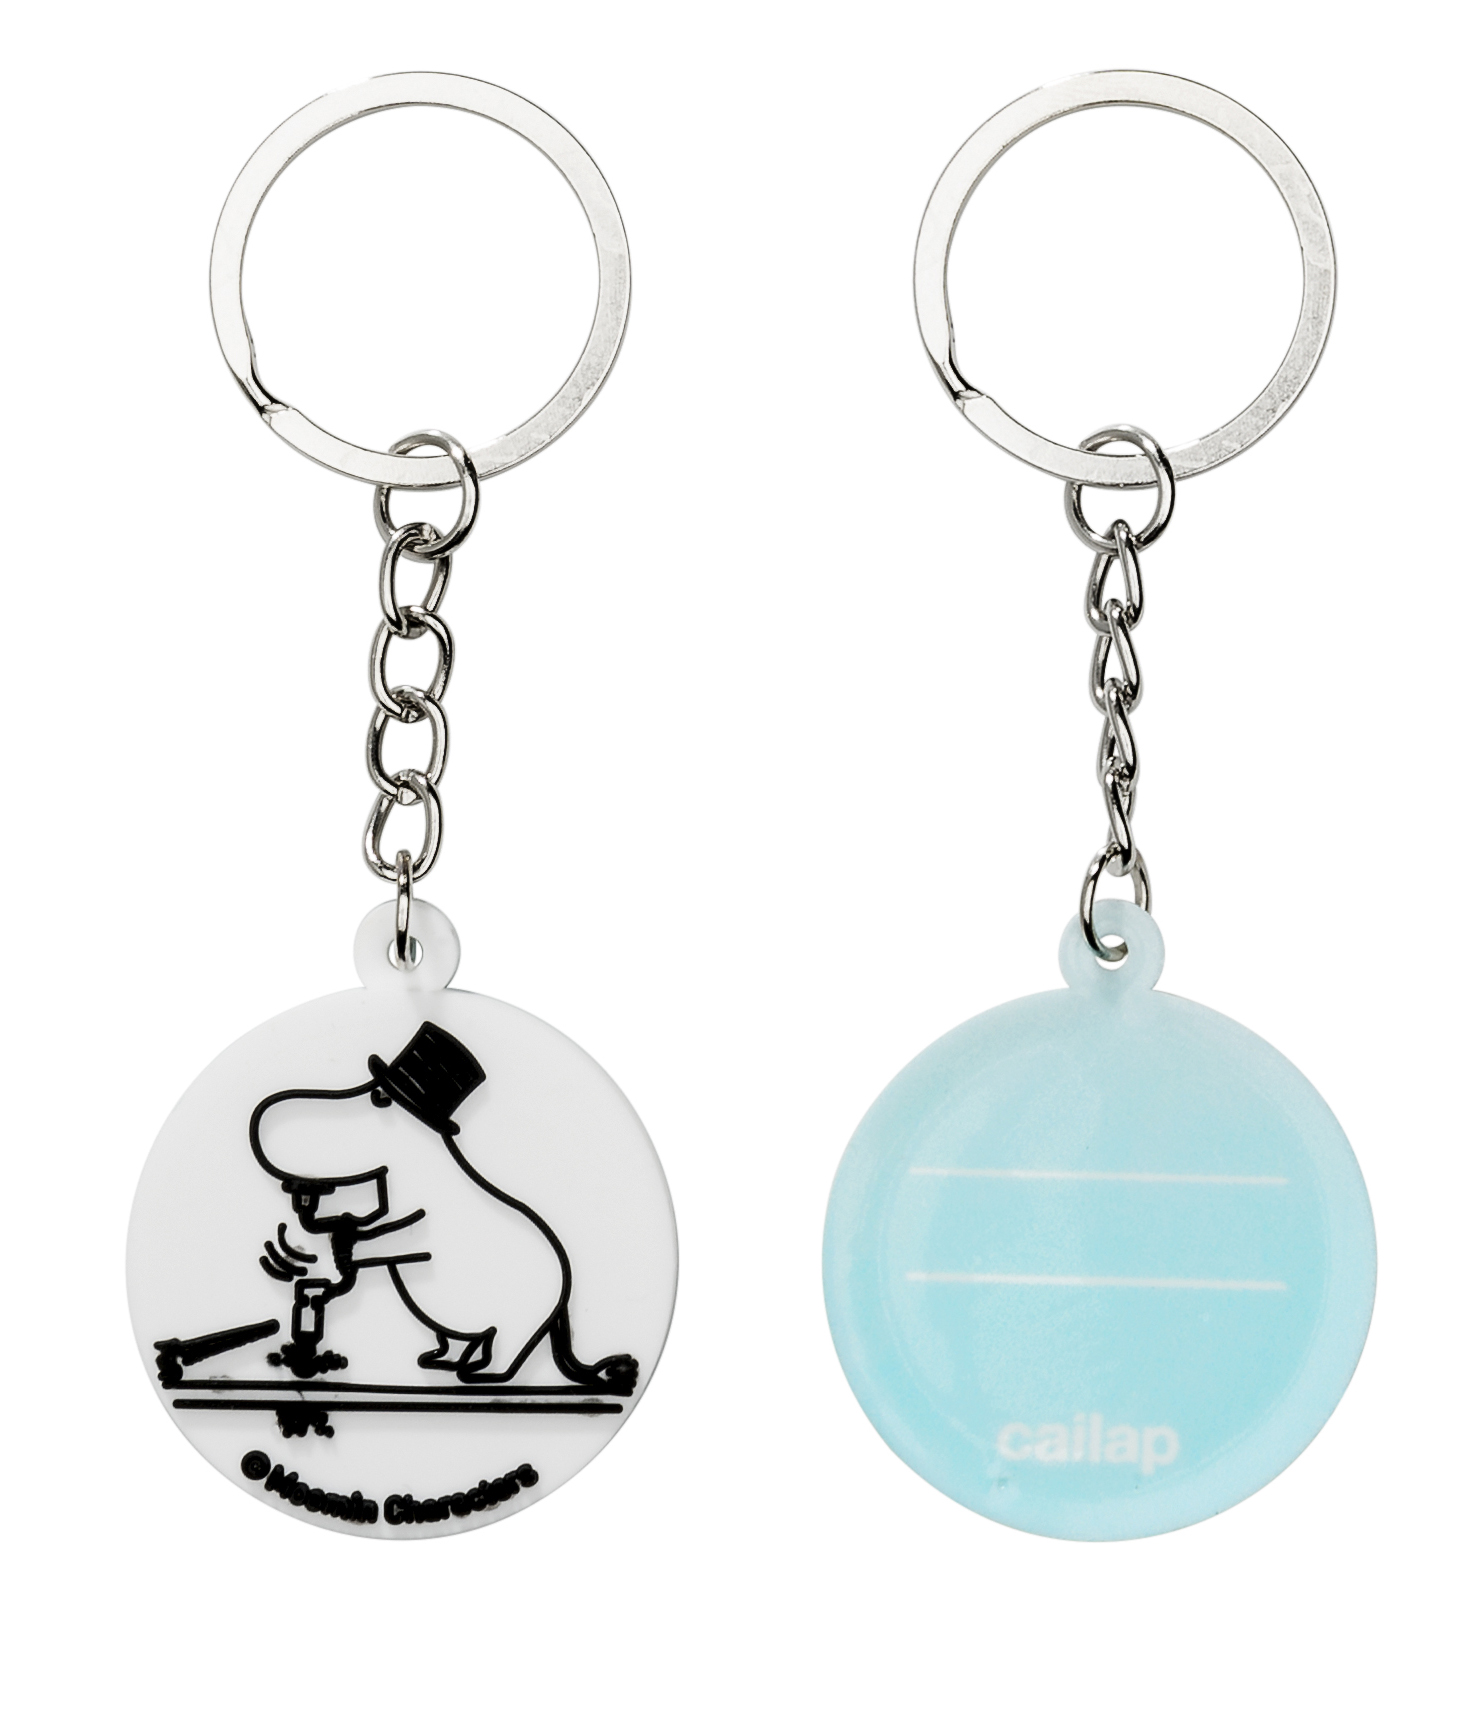 CAILAP KEY RING WITH MOOMINPAPPA